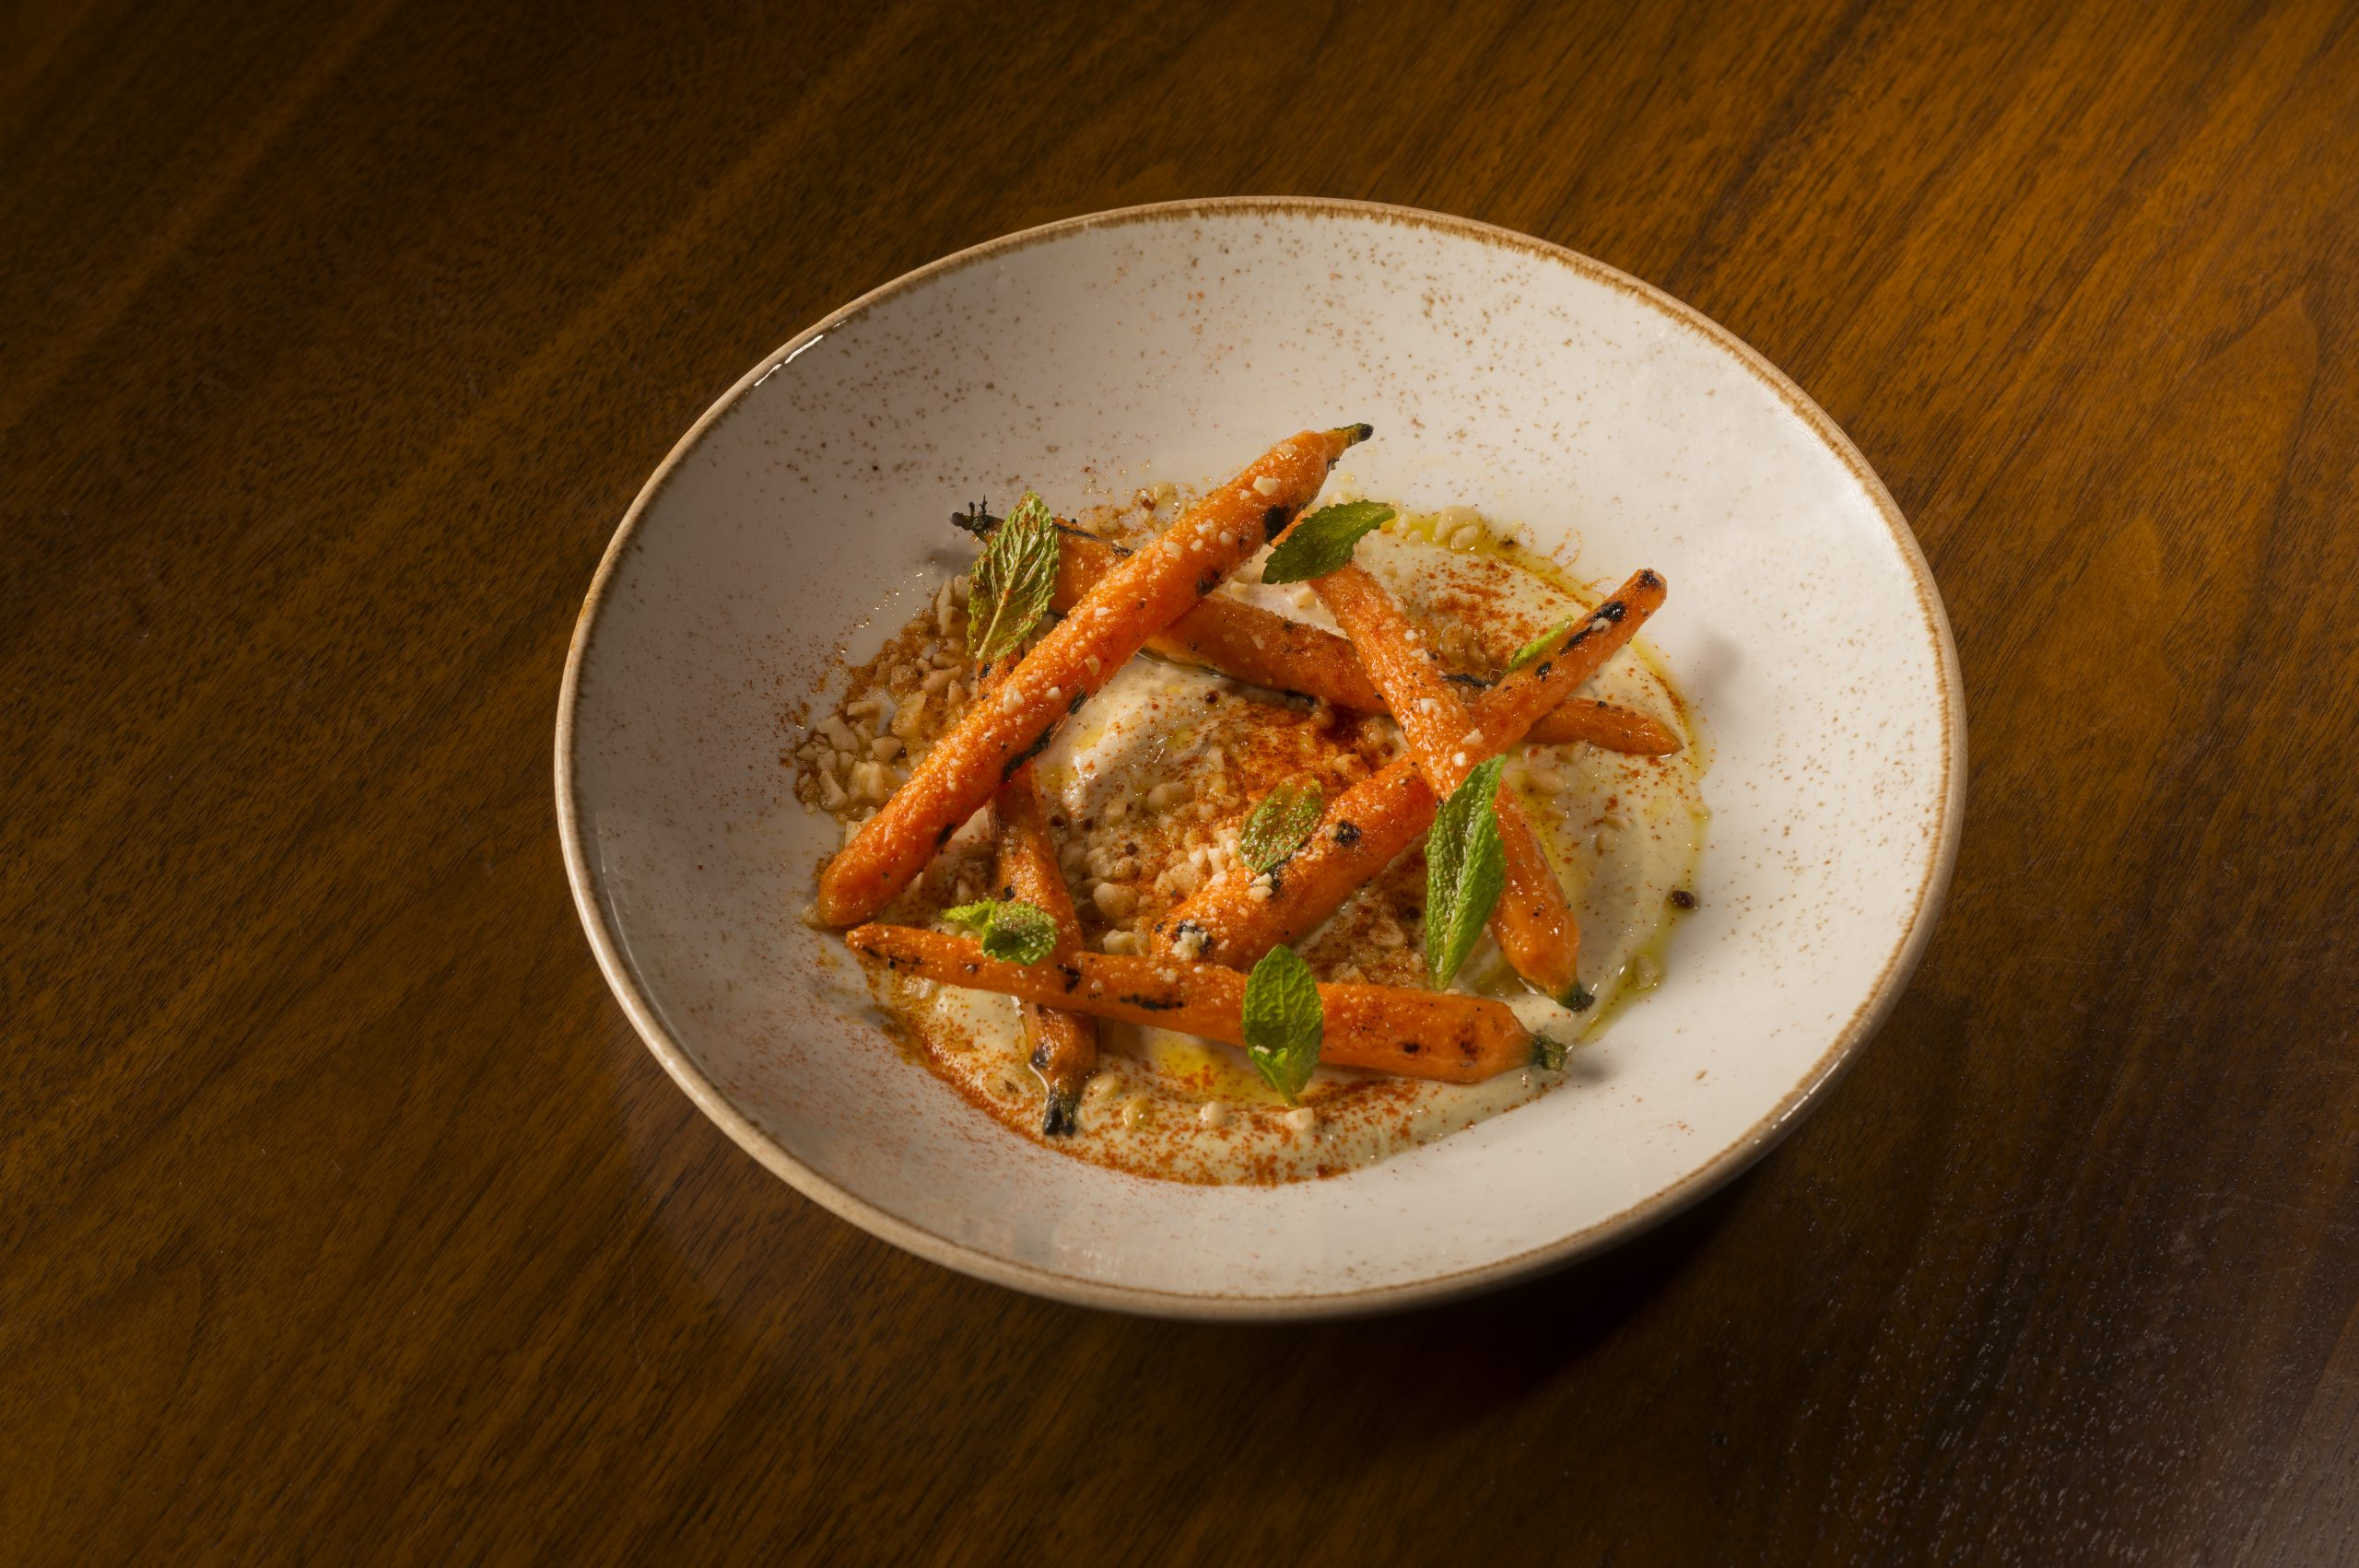 Charred Carrots at Sociale Cafe and Bar